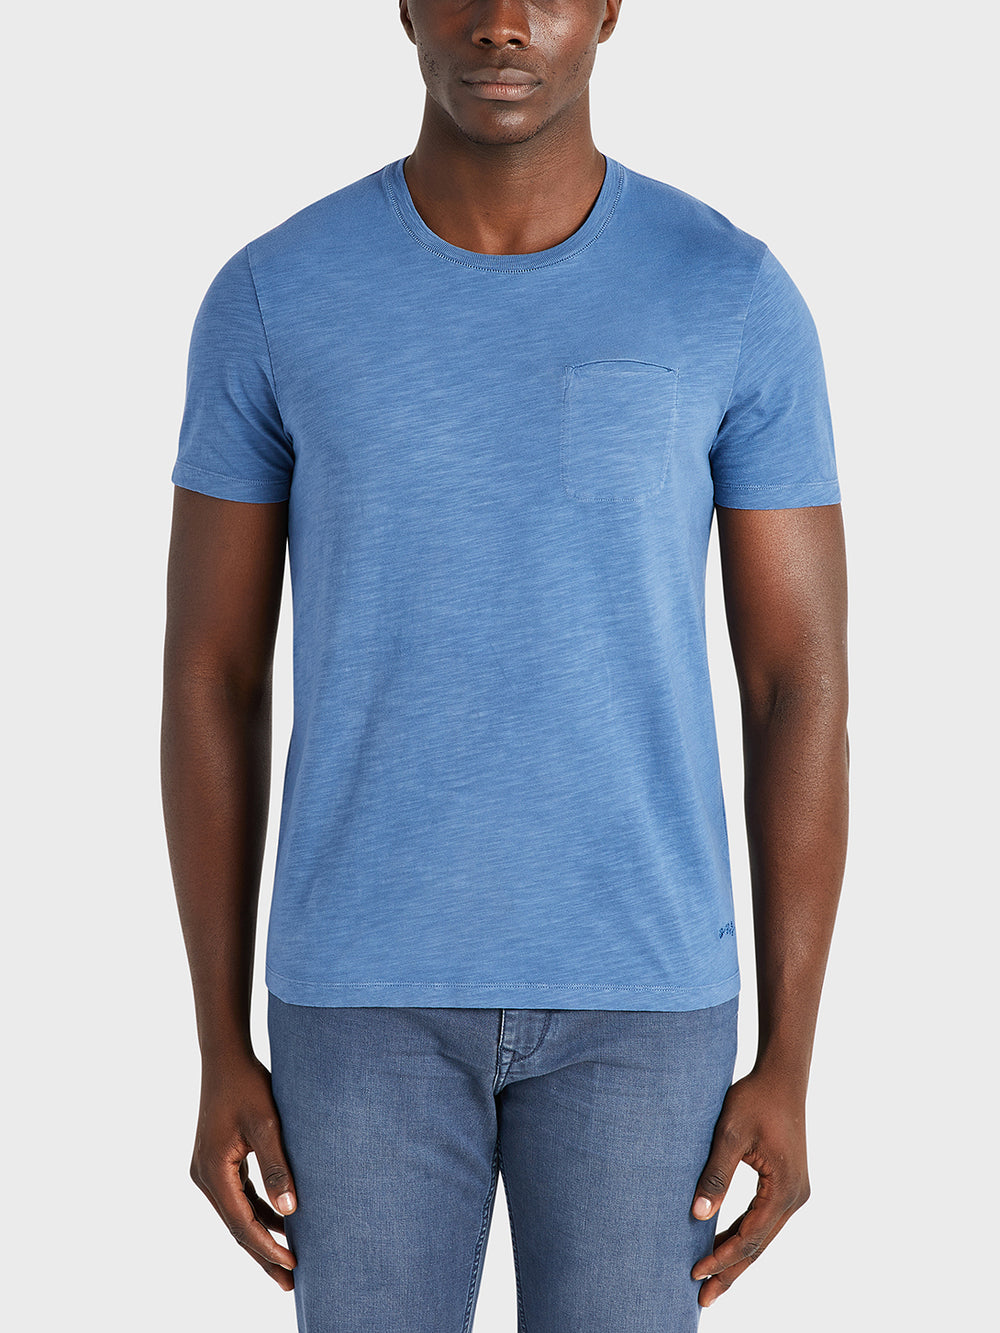 black friday deals ONS Clothing Men's tee in COBALT BLUE